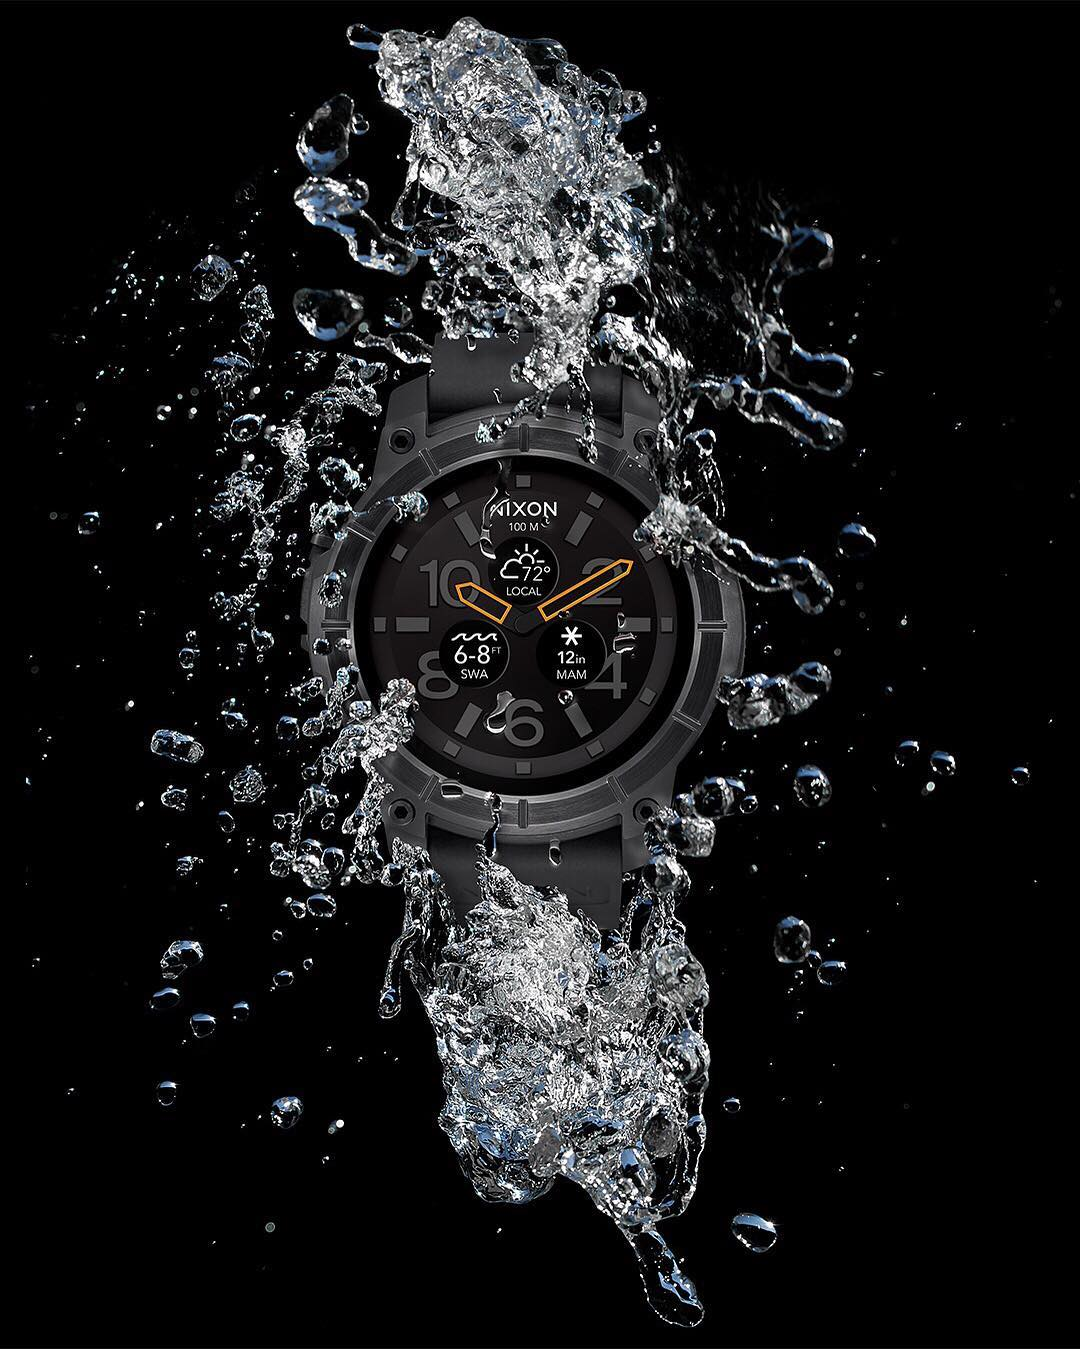 Mission Ready. With groundbreaking water resistant capabilities and an ultra-rugged design, the #Mission features the toughest hardware of any smartwatch on the market. Learn more about the features and functions of the world's first action sports...